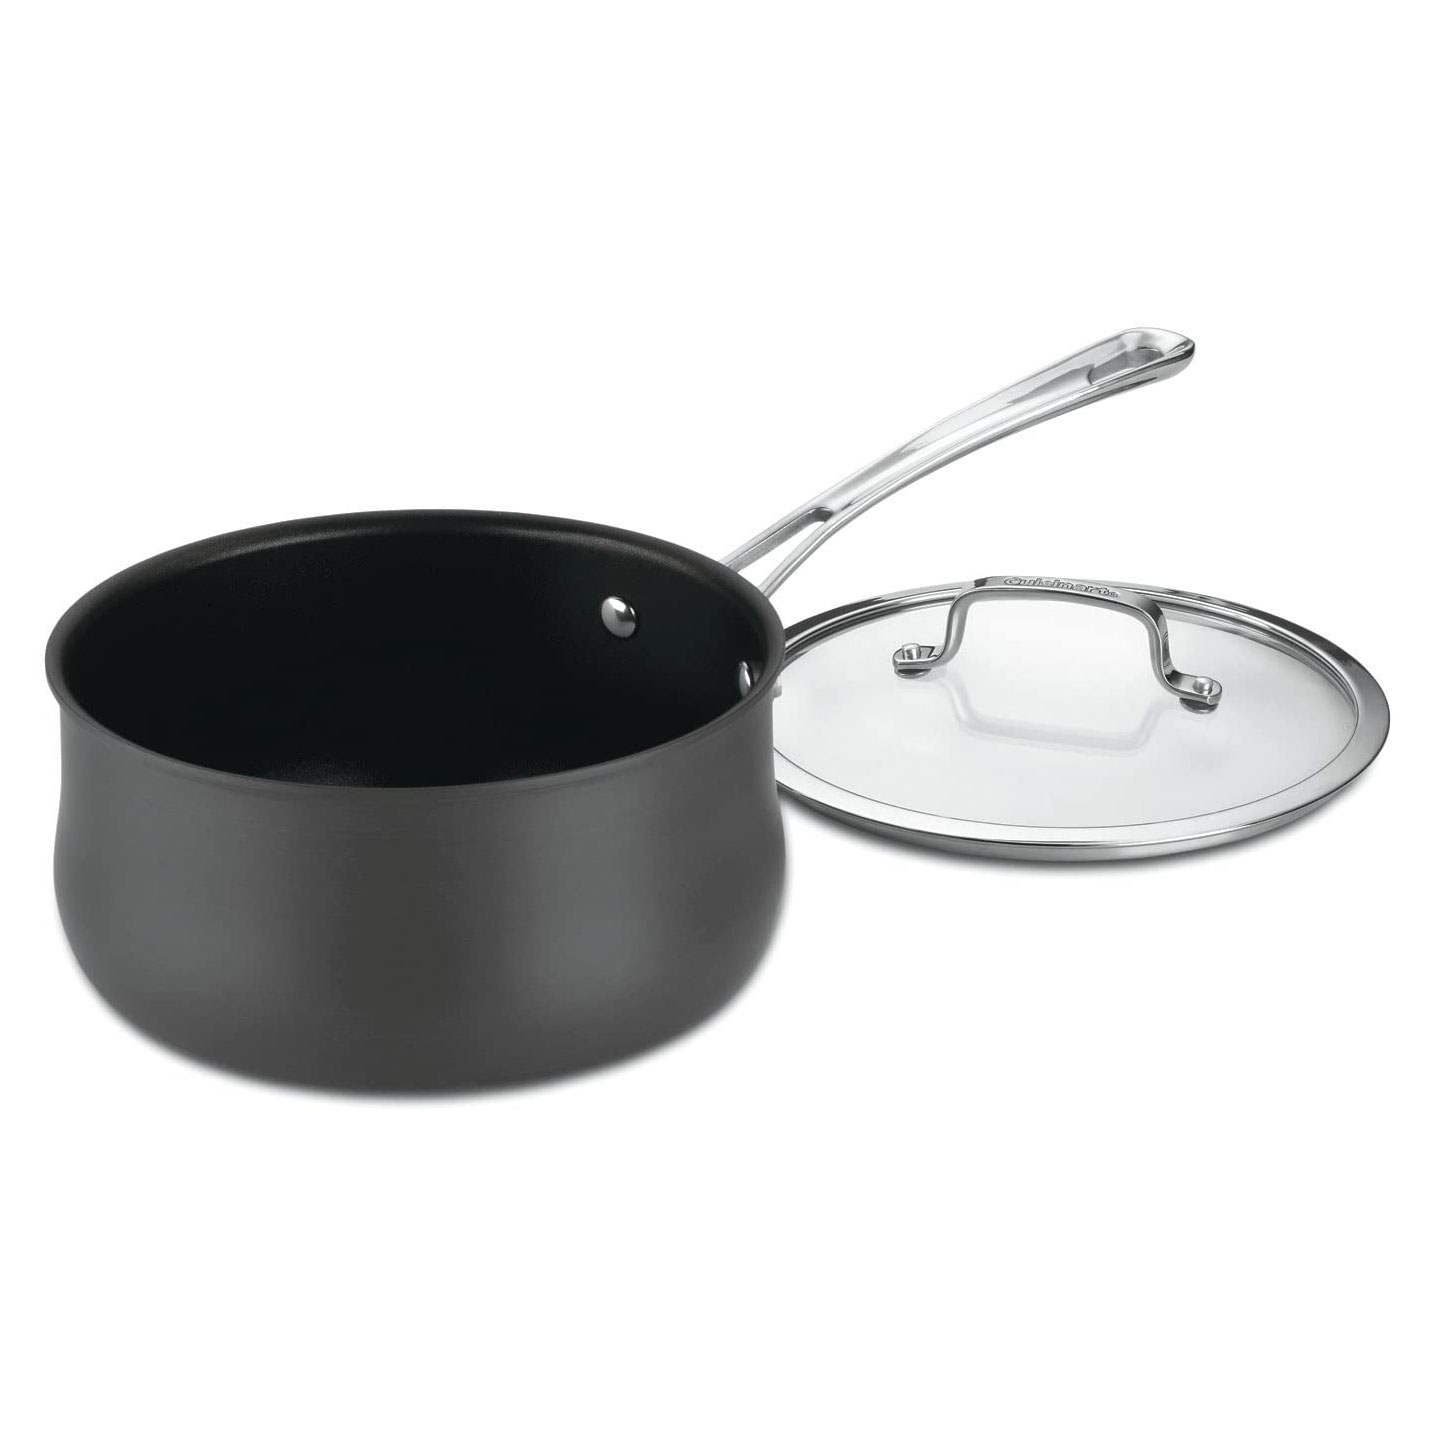 black saucepan with glass lid